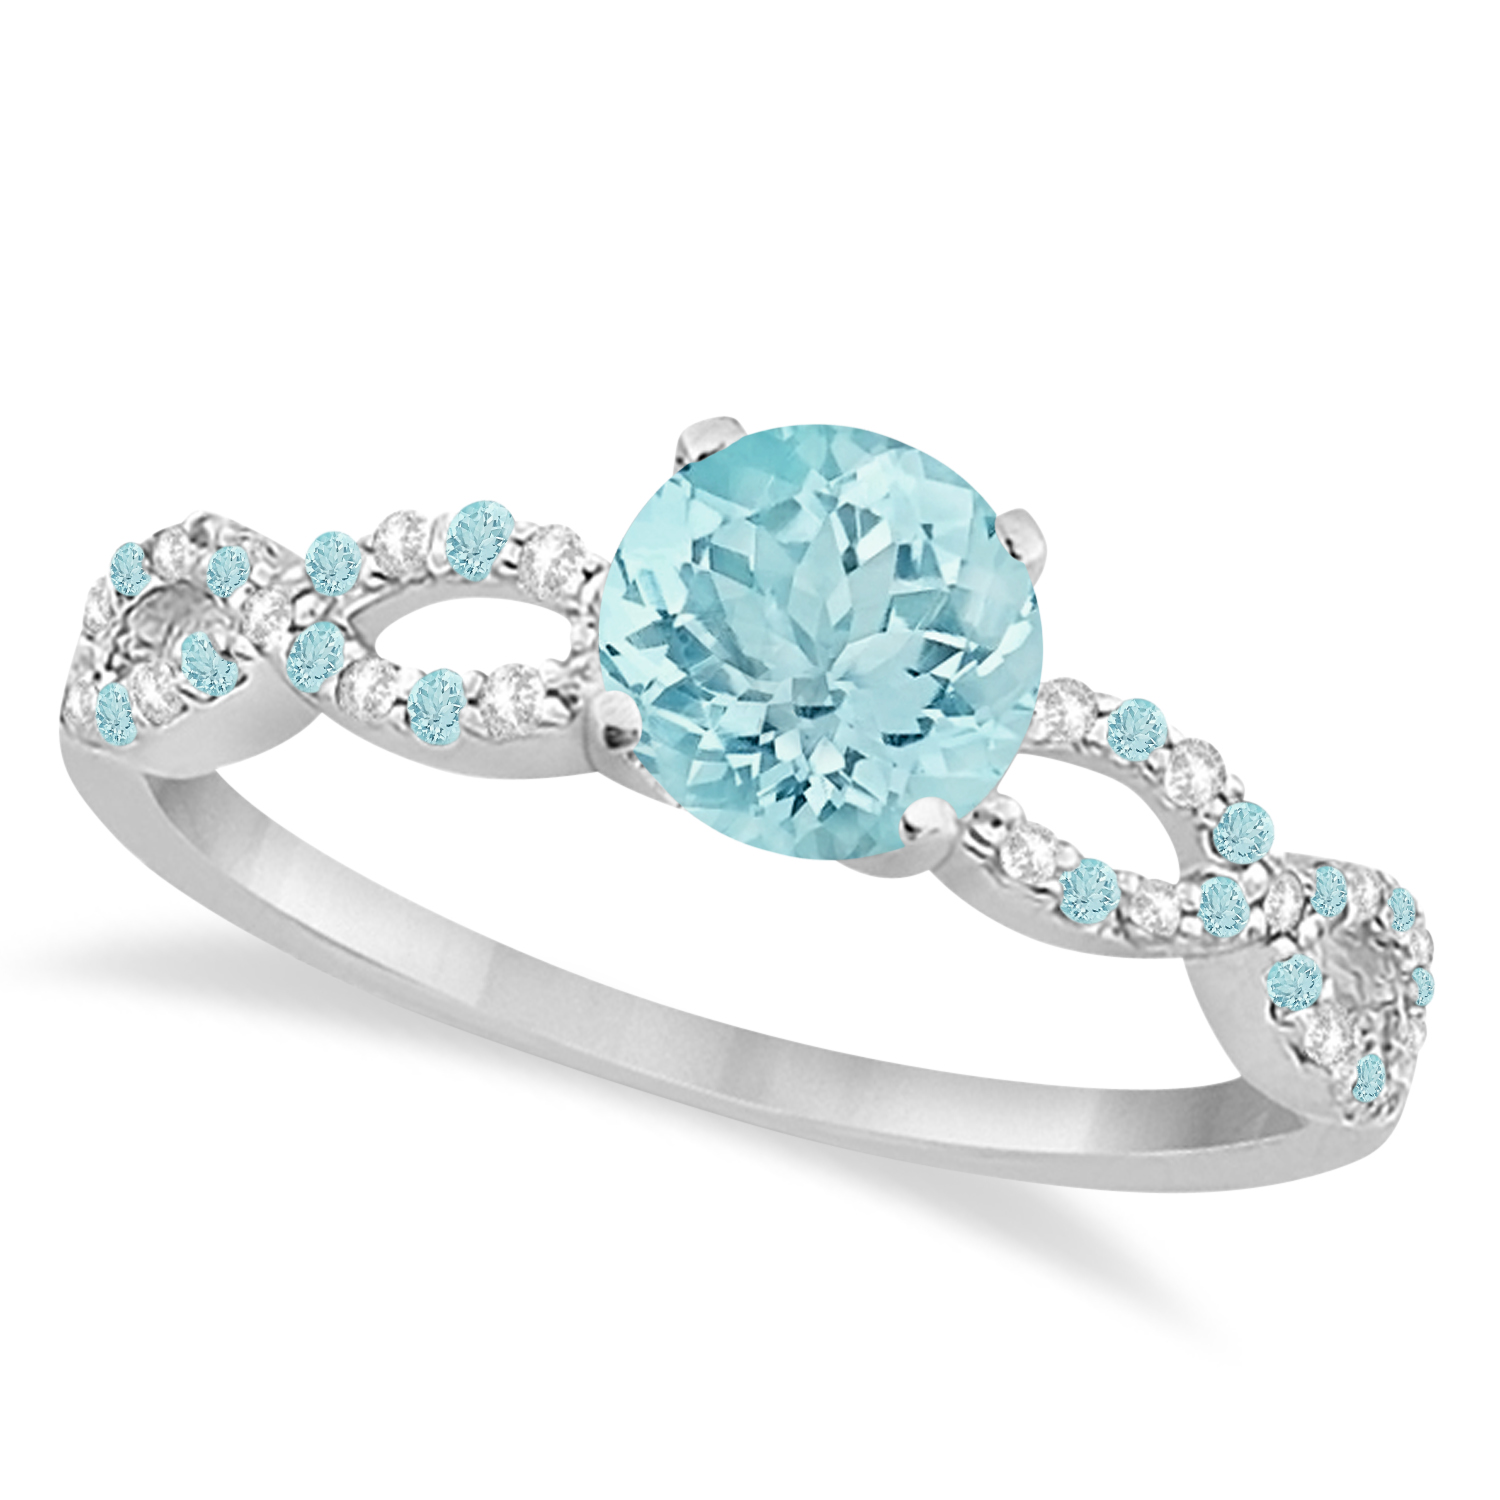 infinity diamond aquamarine engagement ring 14k white gold 090ct - Aquamarine Wedding Rings